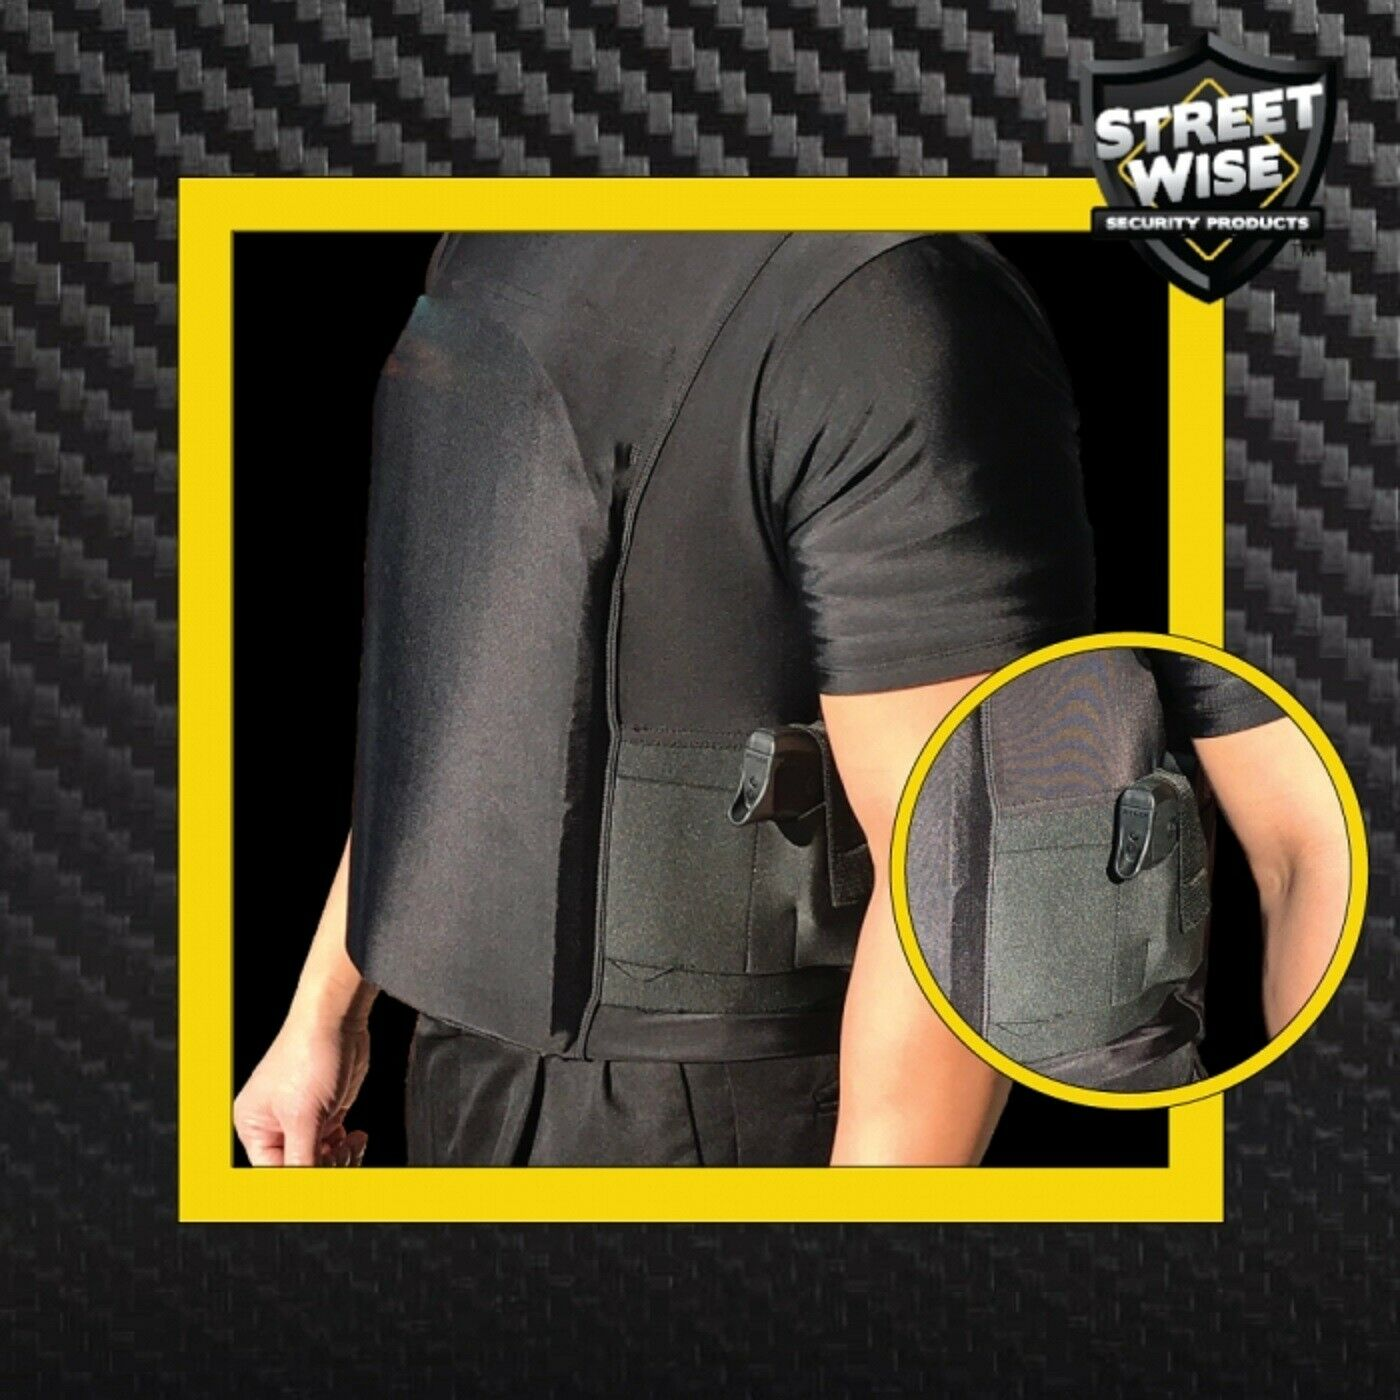 Streetwise Police-Security Safe-T-Shirt - Ballistic Plate Carrier With Holster